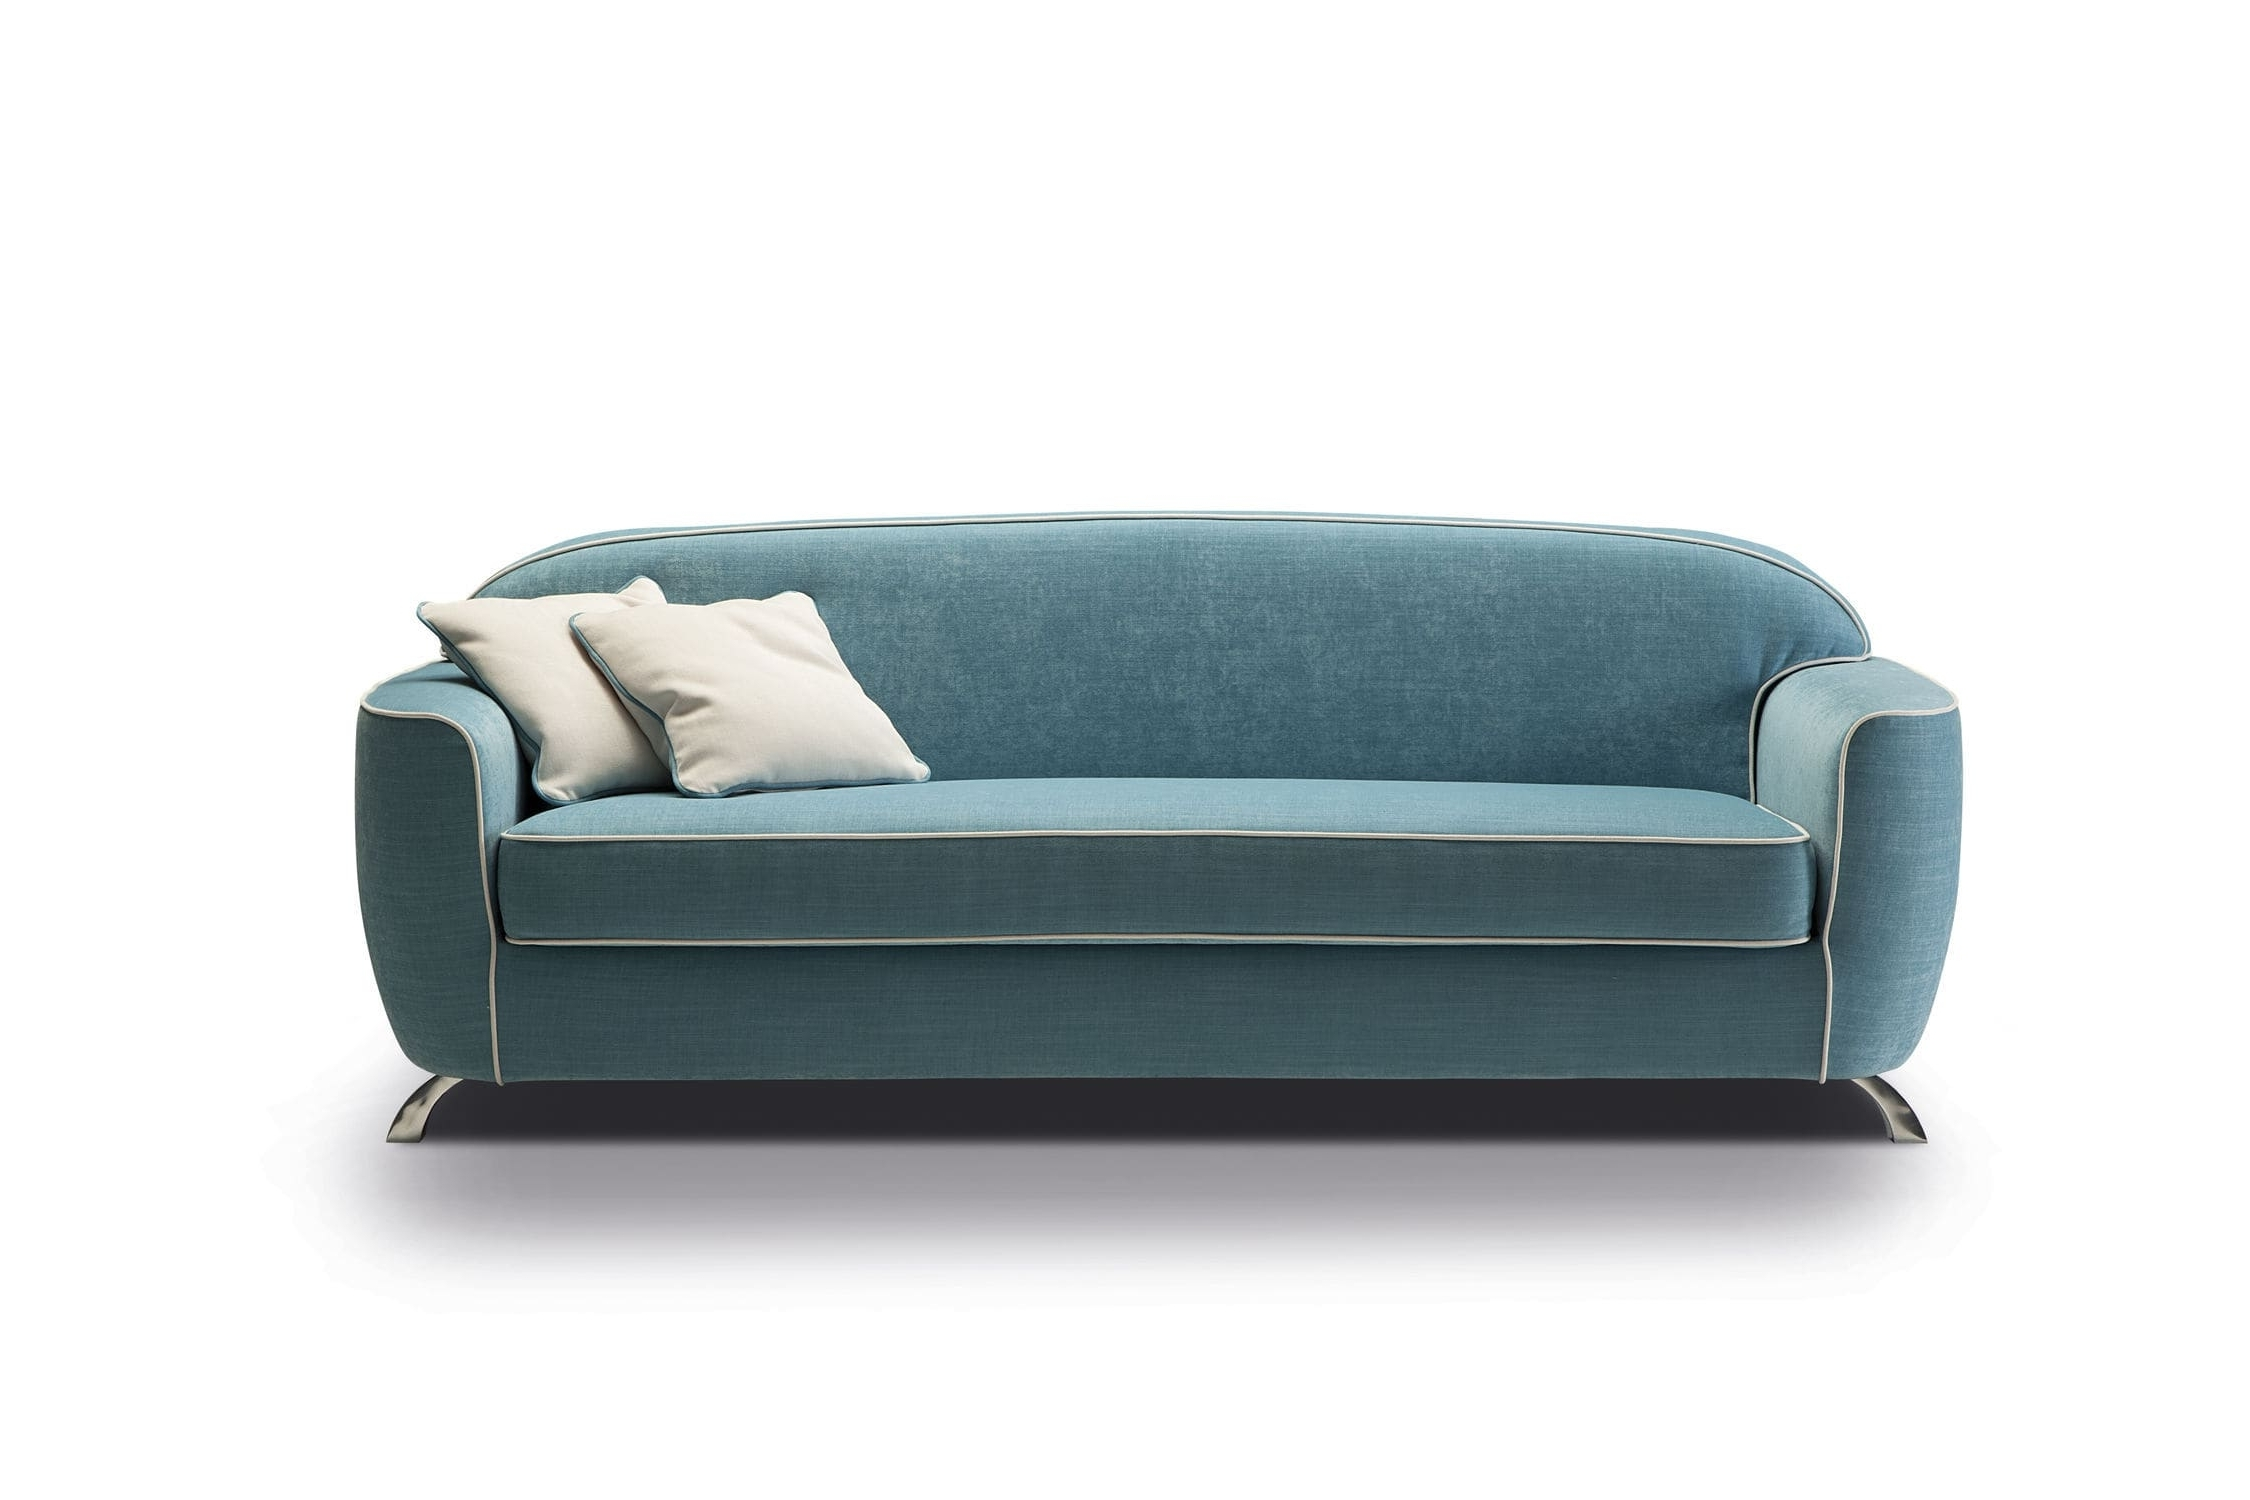 Famous Sofas With Removable Cover Intended For Sofa Bed / Contemporary / Fabric / With Washable Removable Cover (View 1 of 15)